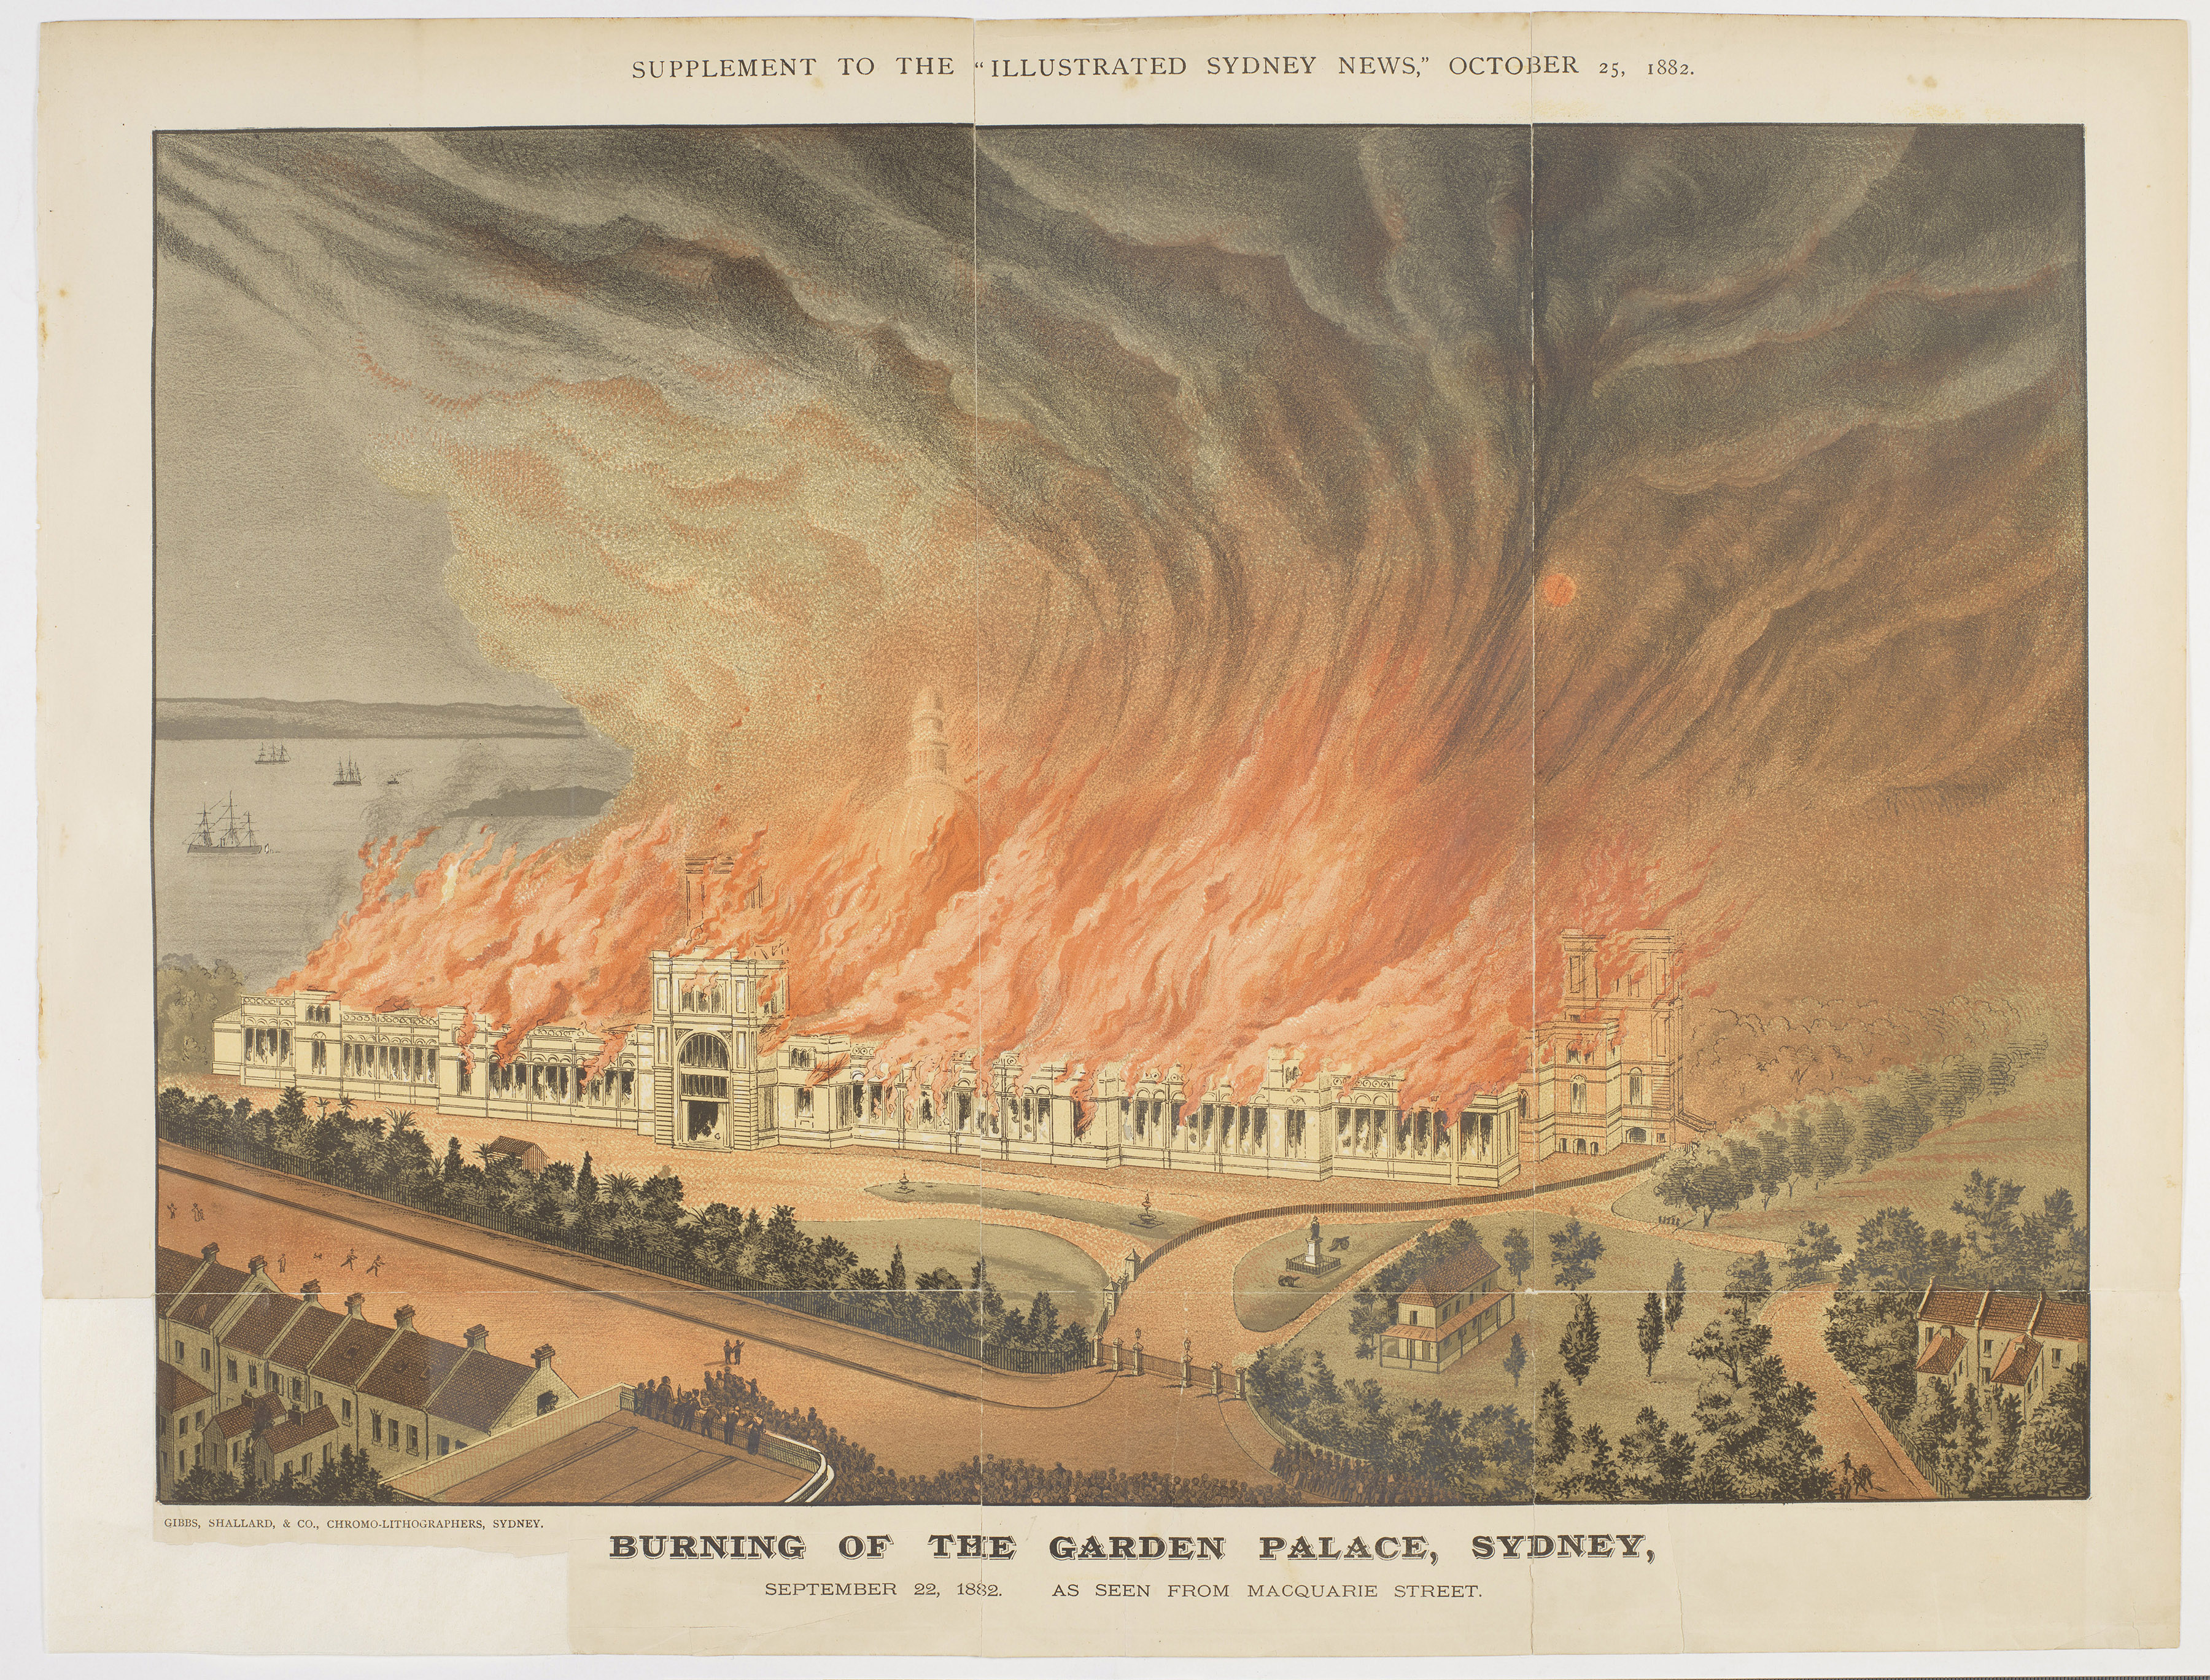 Garden Palace burning